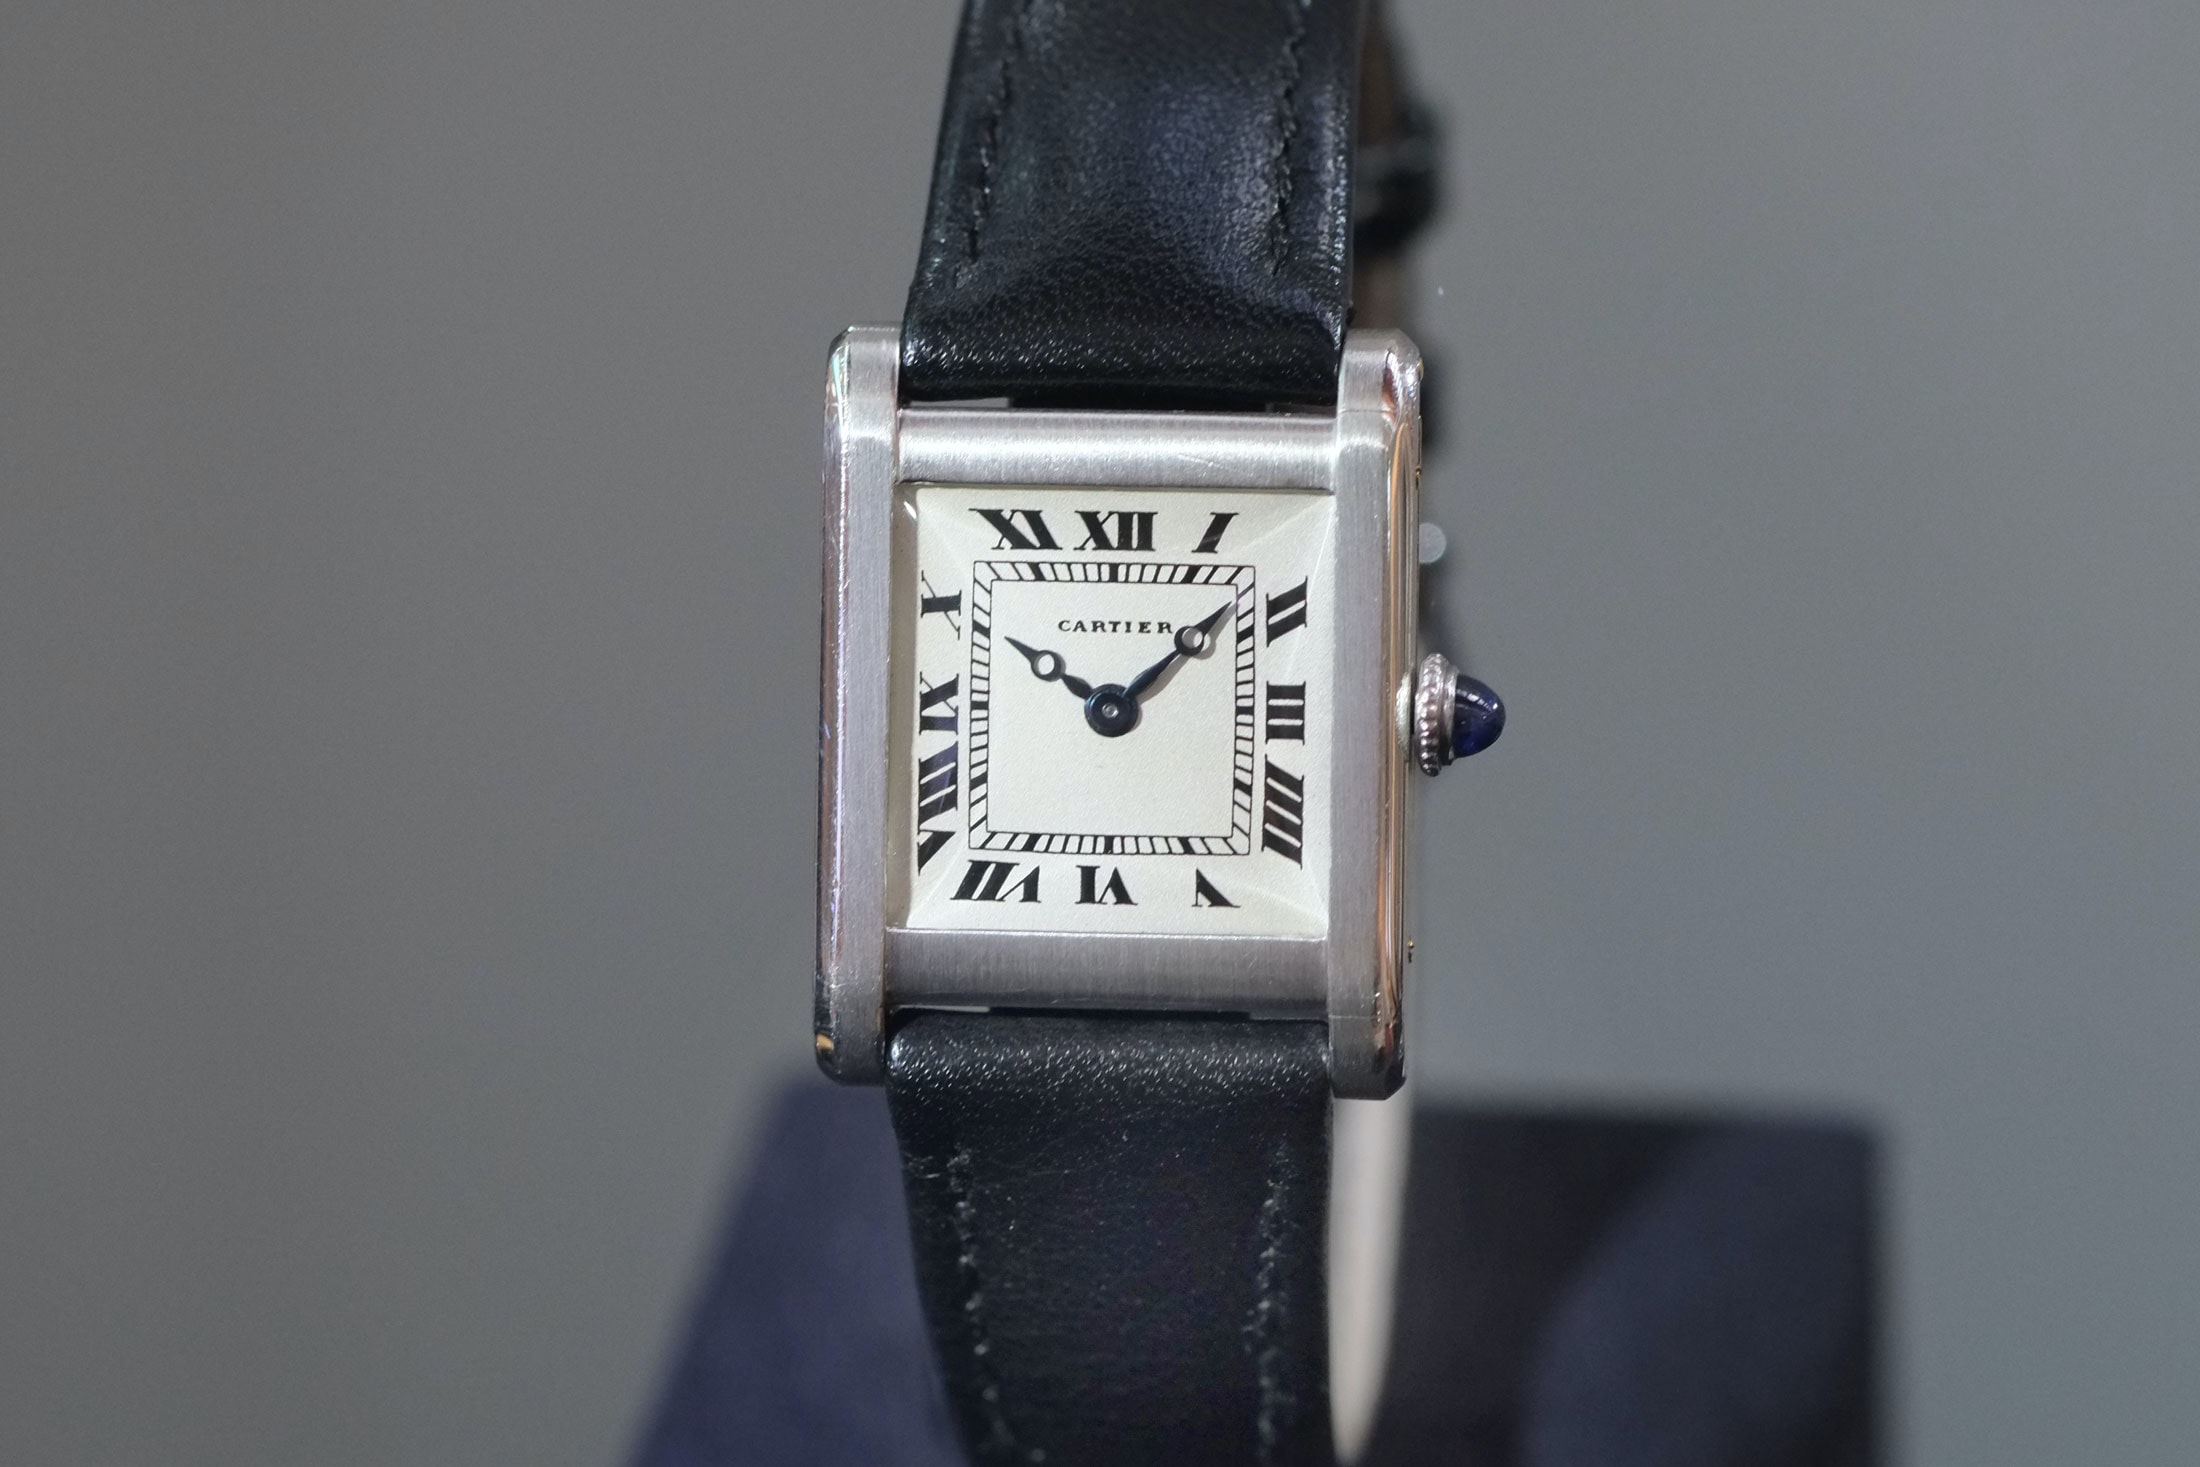 cartier tank 1920 Just Because: My Five Favorite Watches From The FHH's Mastery Of Time Exhibition (And A Ton Of Other Photos) Just Because: My Five Favorite Watches From The FHH's Mastery Of Time Exhibition (And A Ton Of Other Photos) DSCF8676